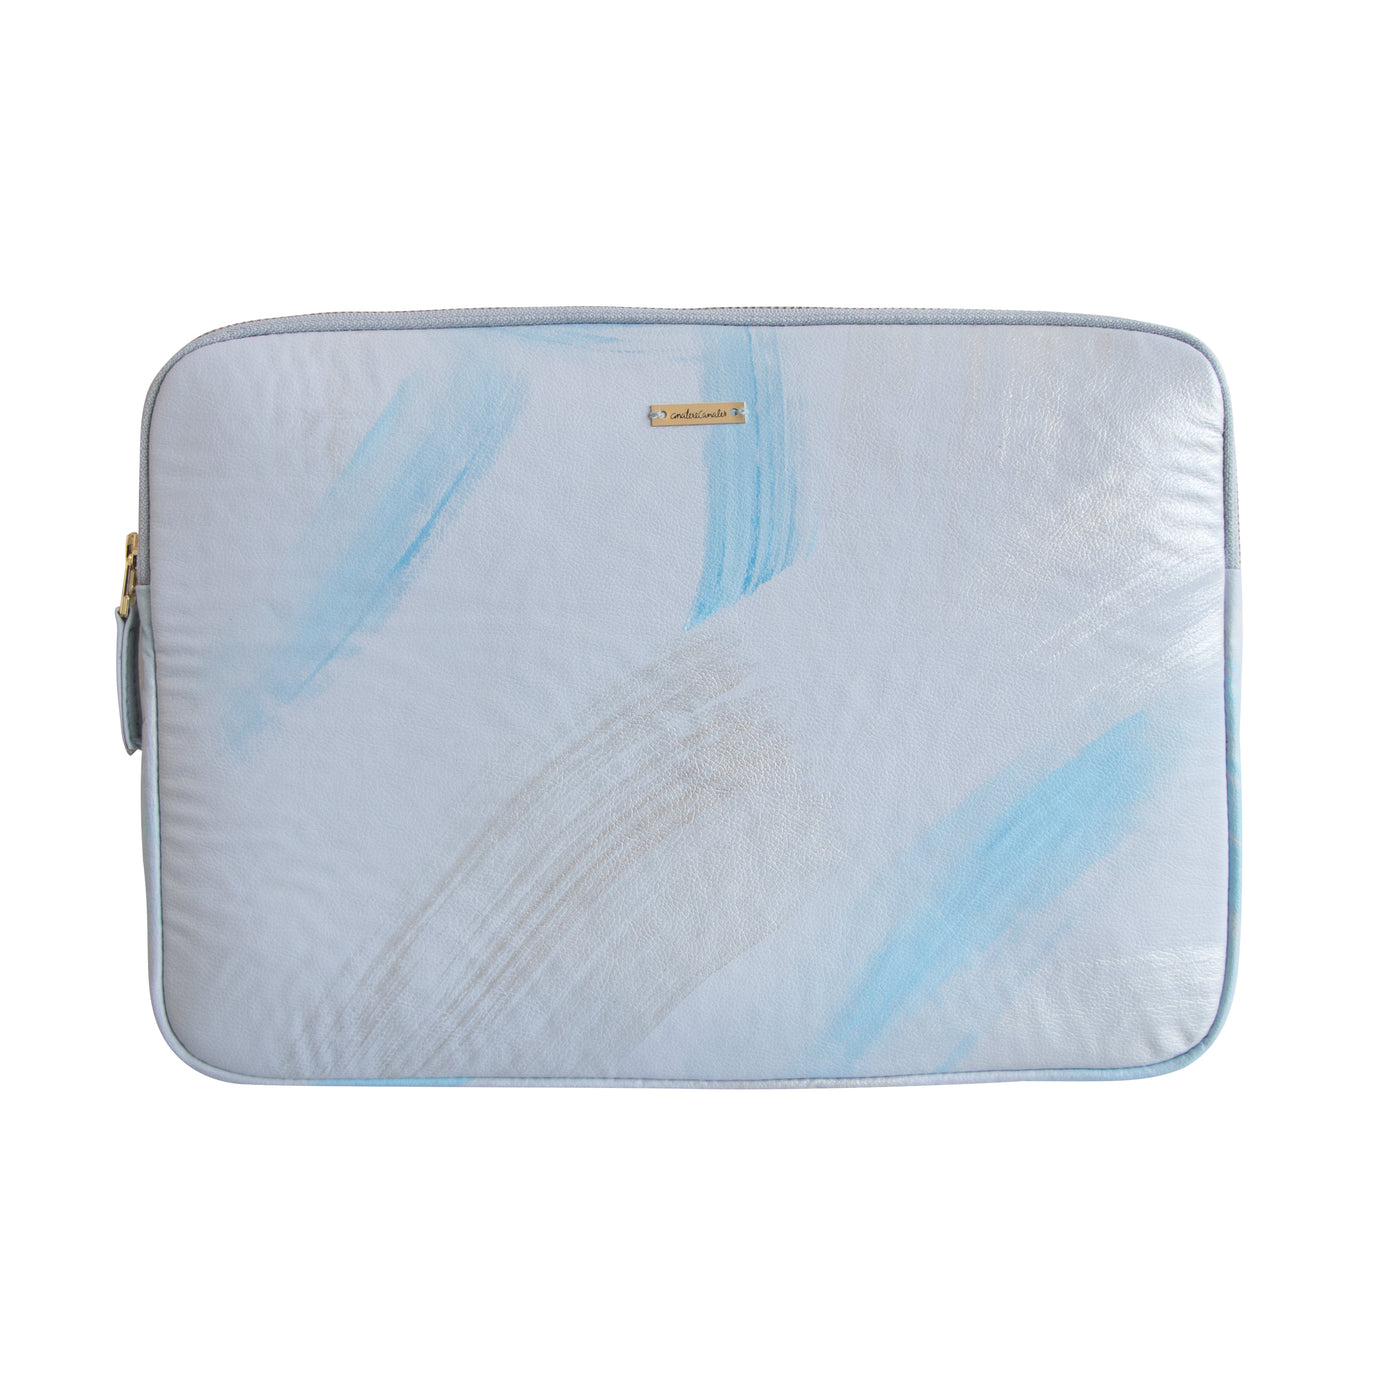 Horchata Laptop Bag - Ana Tere Canales